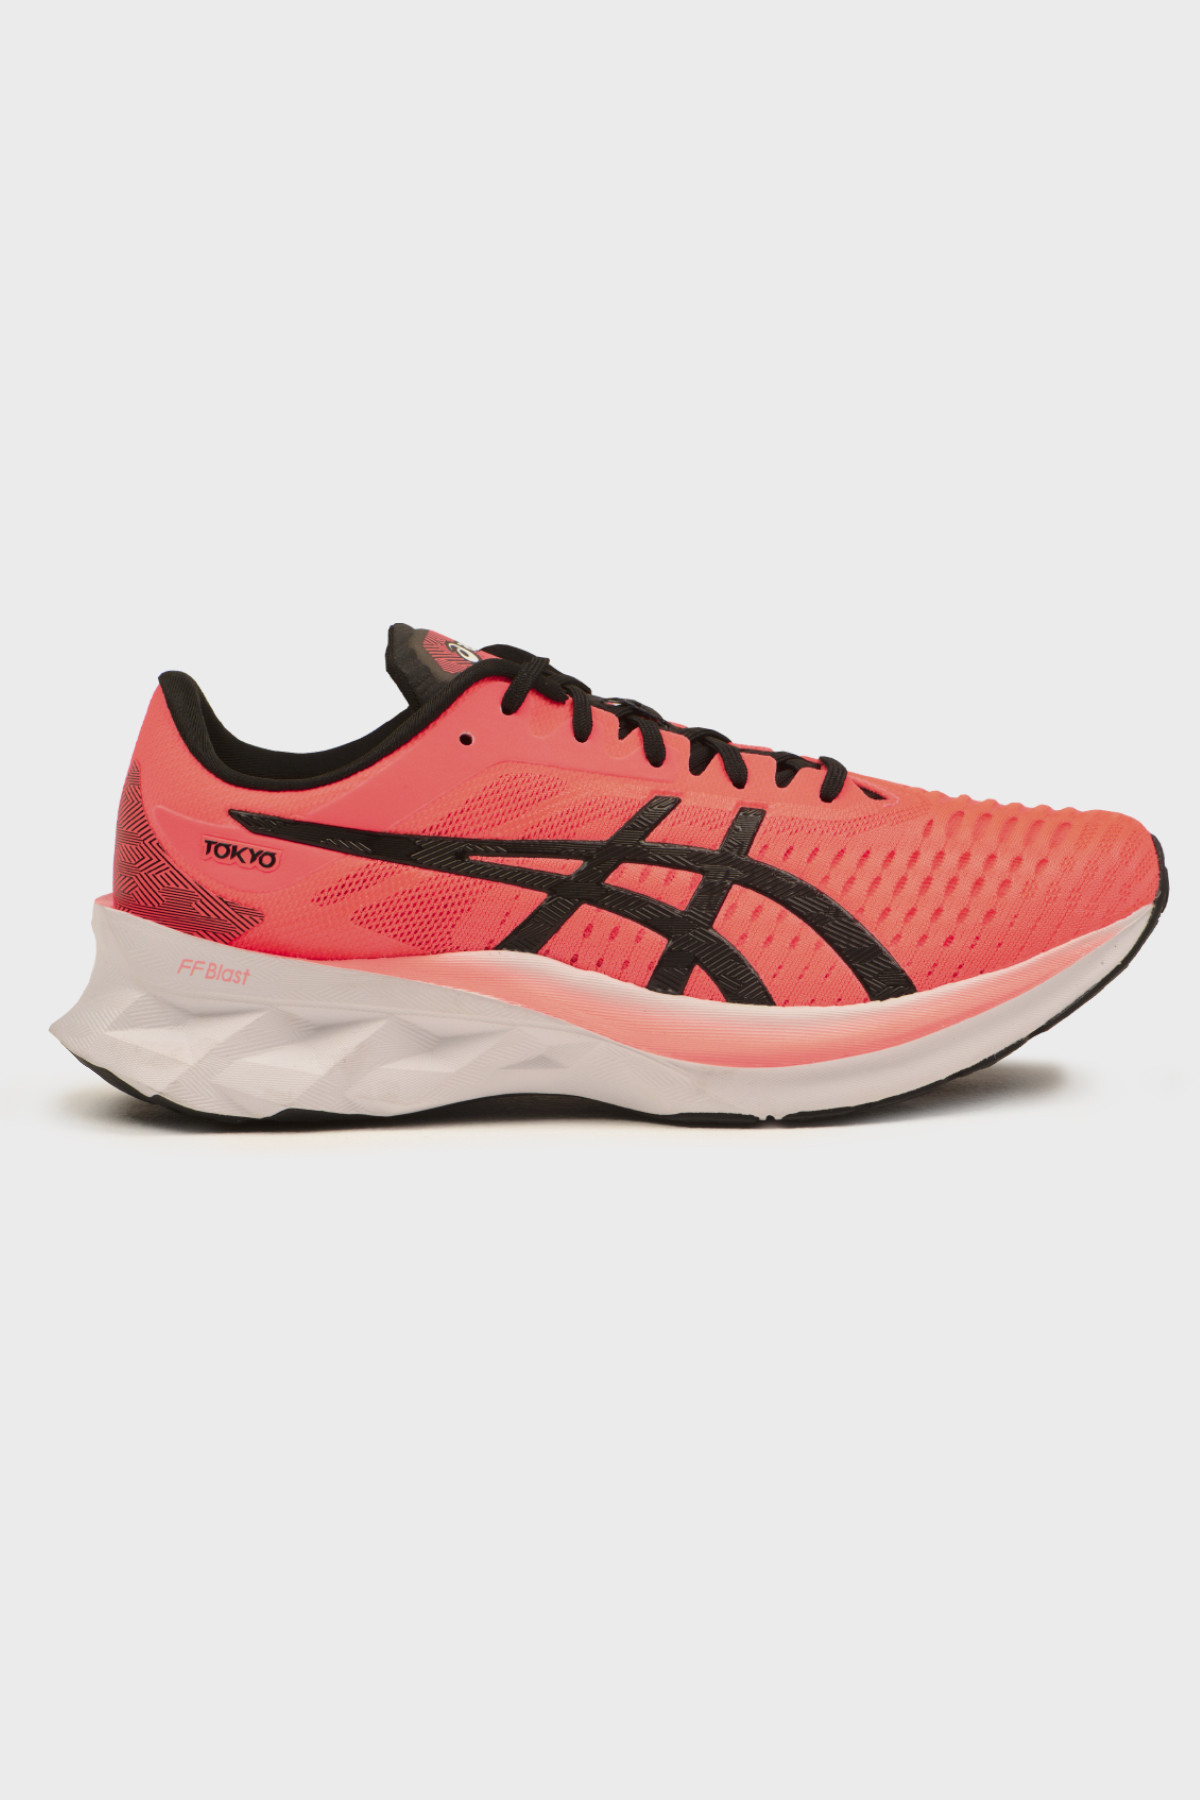 Asics - Novablast - Sunrise Red